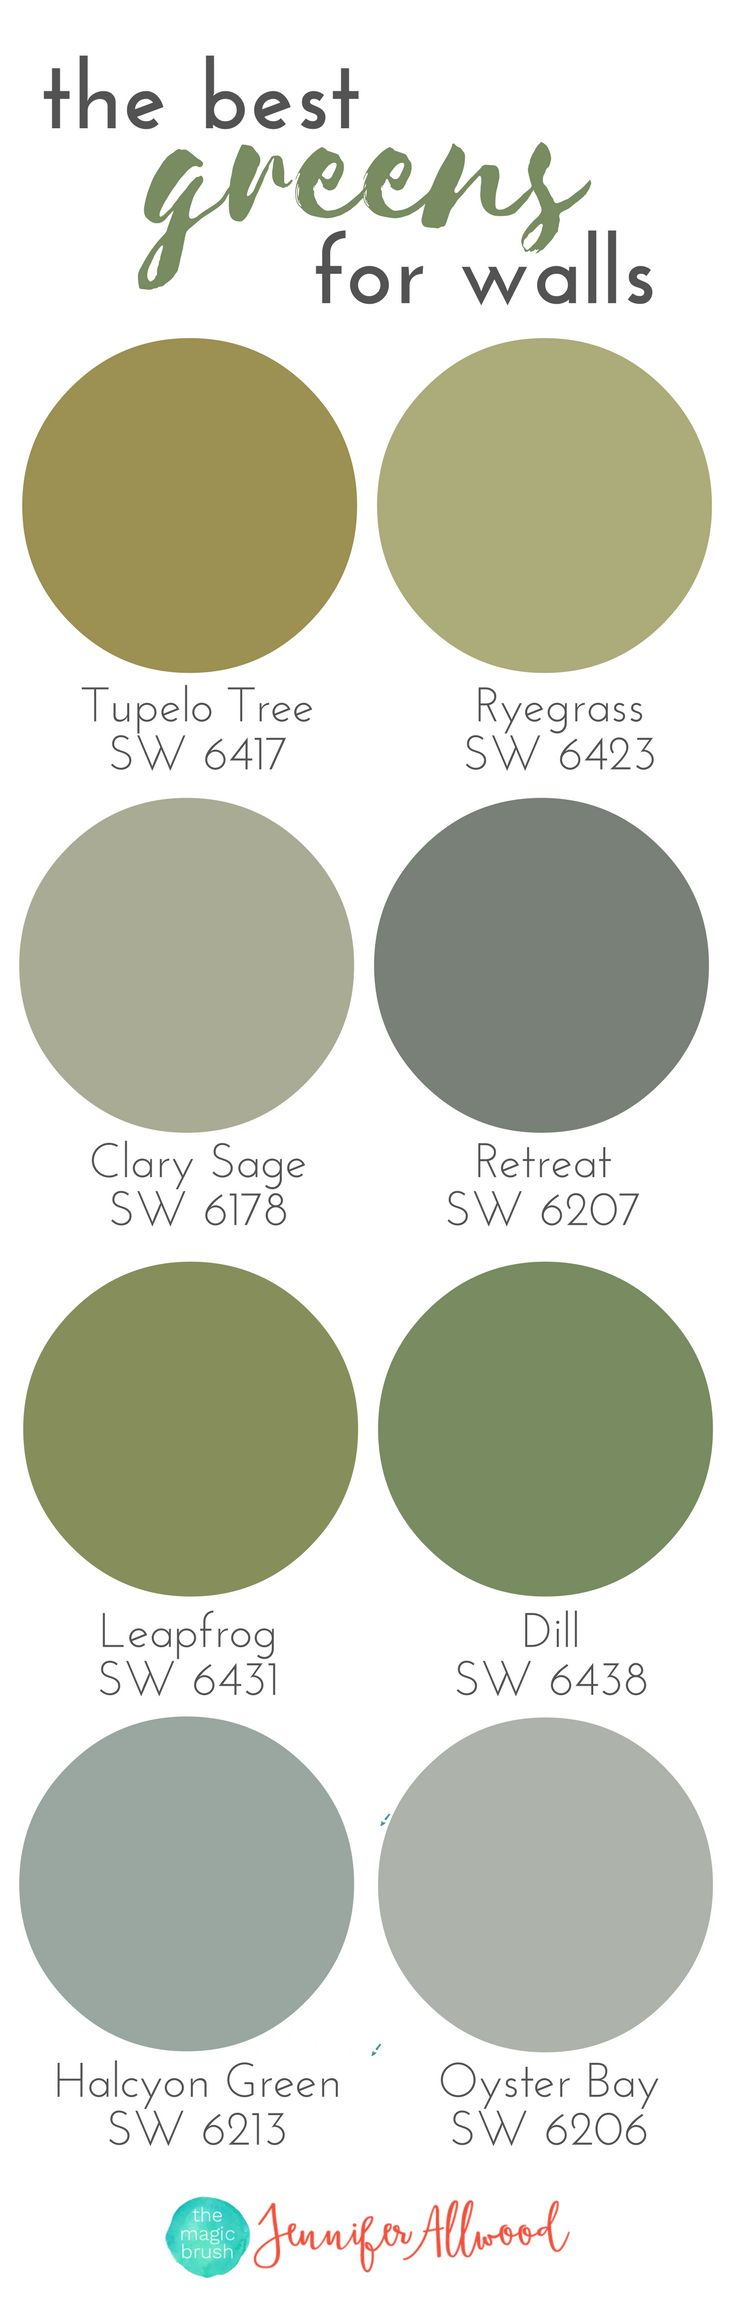 Best greens for walls | Paint Color Ideas | Farmhouse Greens | Interior Paint Ideas | Professional Wall Color Advice from Jennifer Allwood of the MagicBrushinc.com